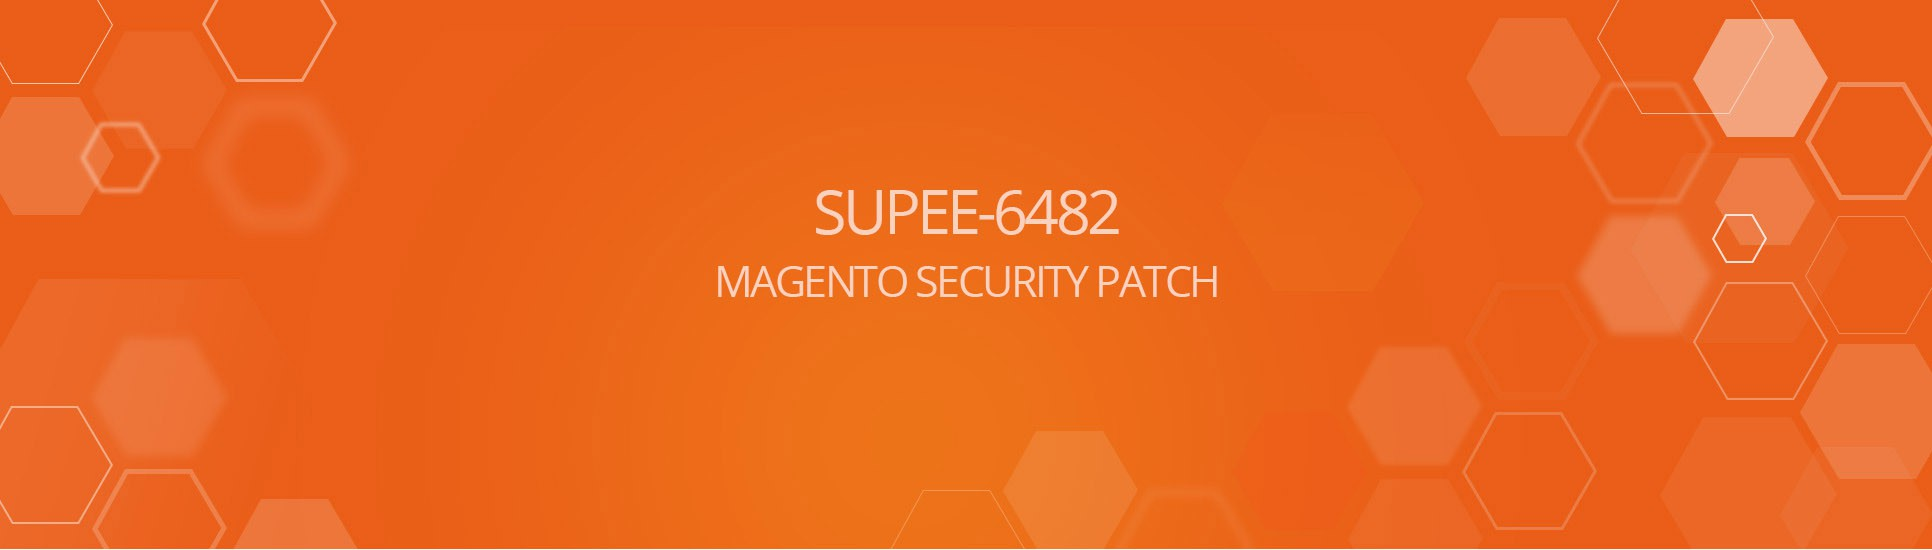 Magento patch SUPEE-6482